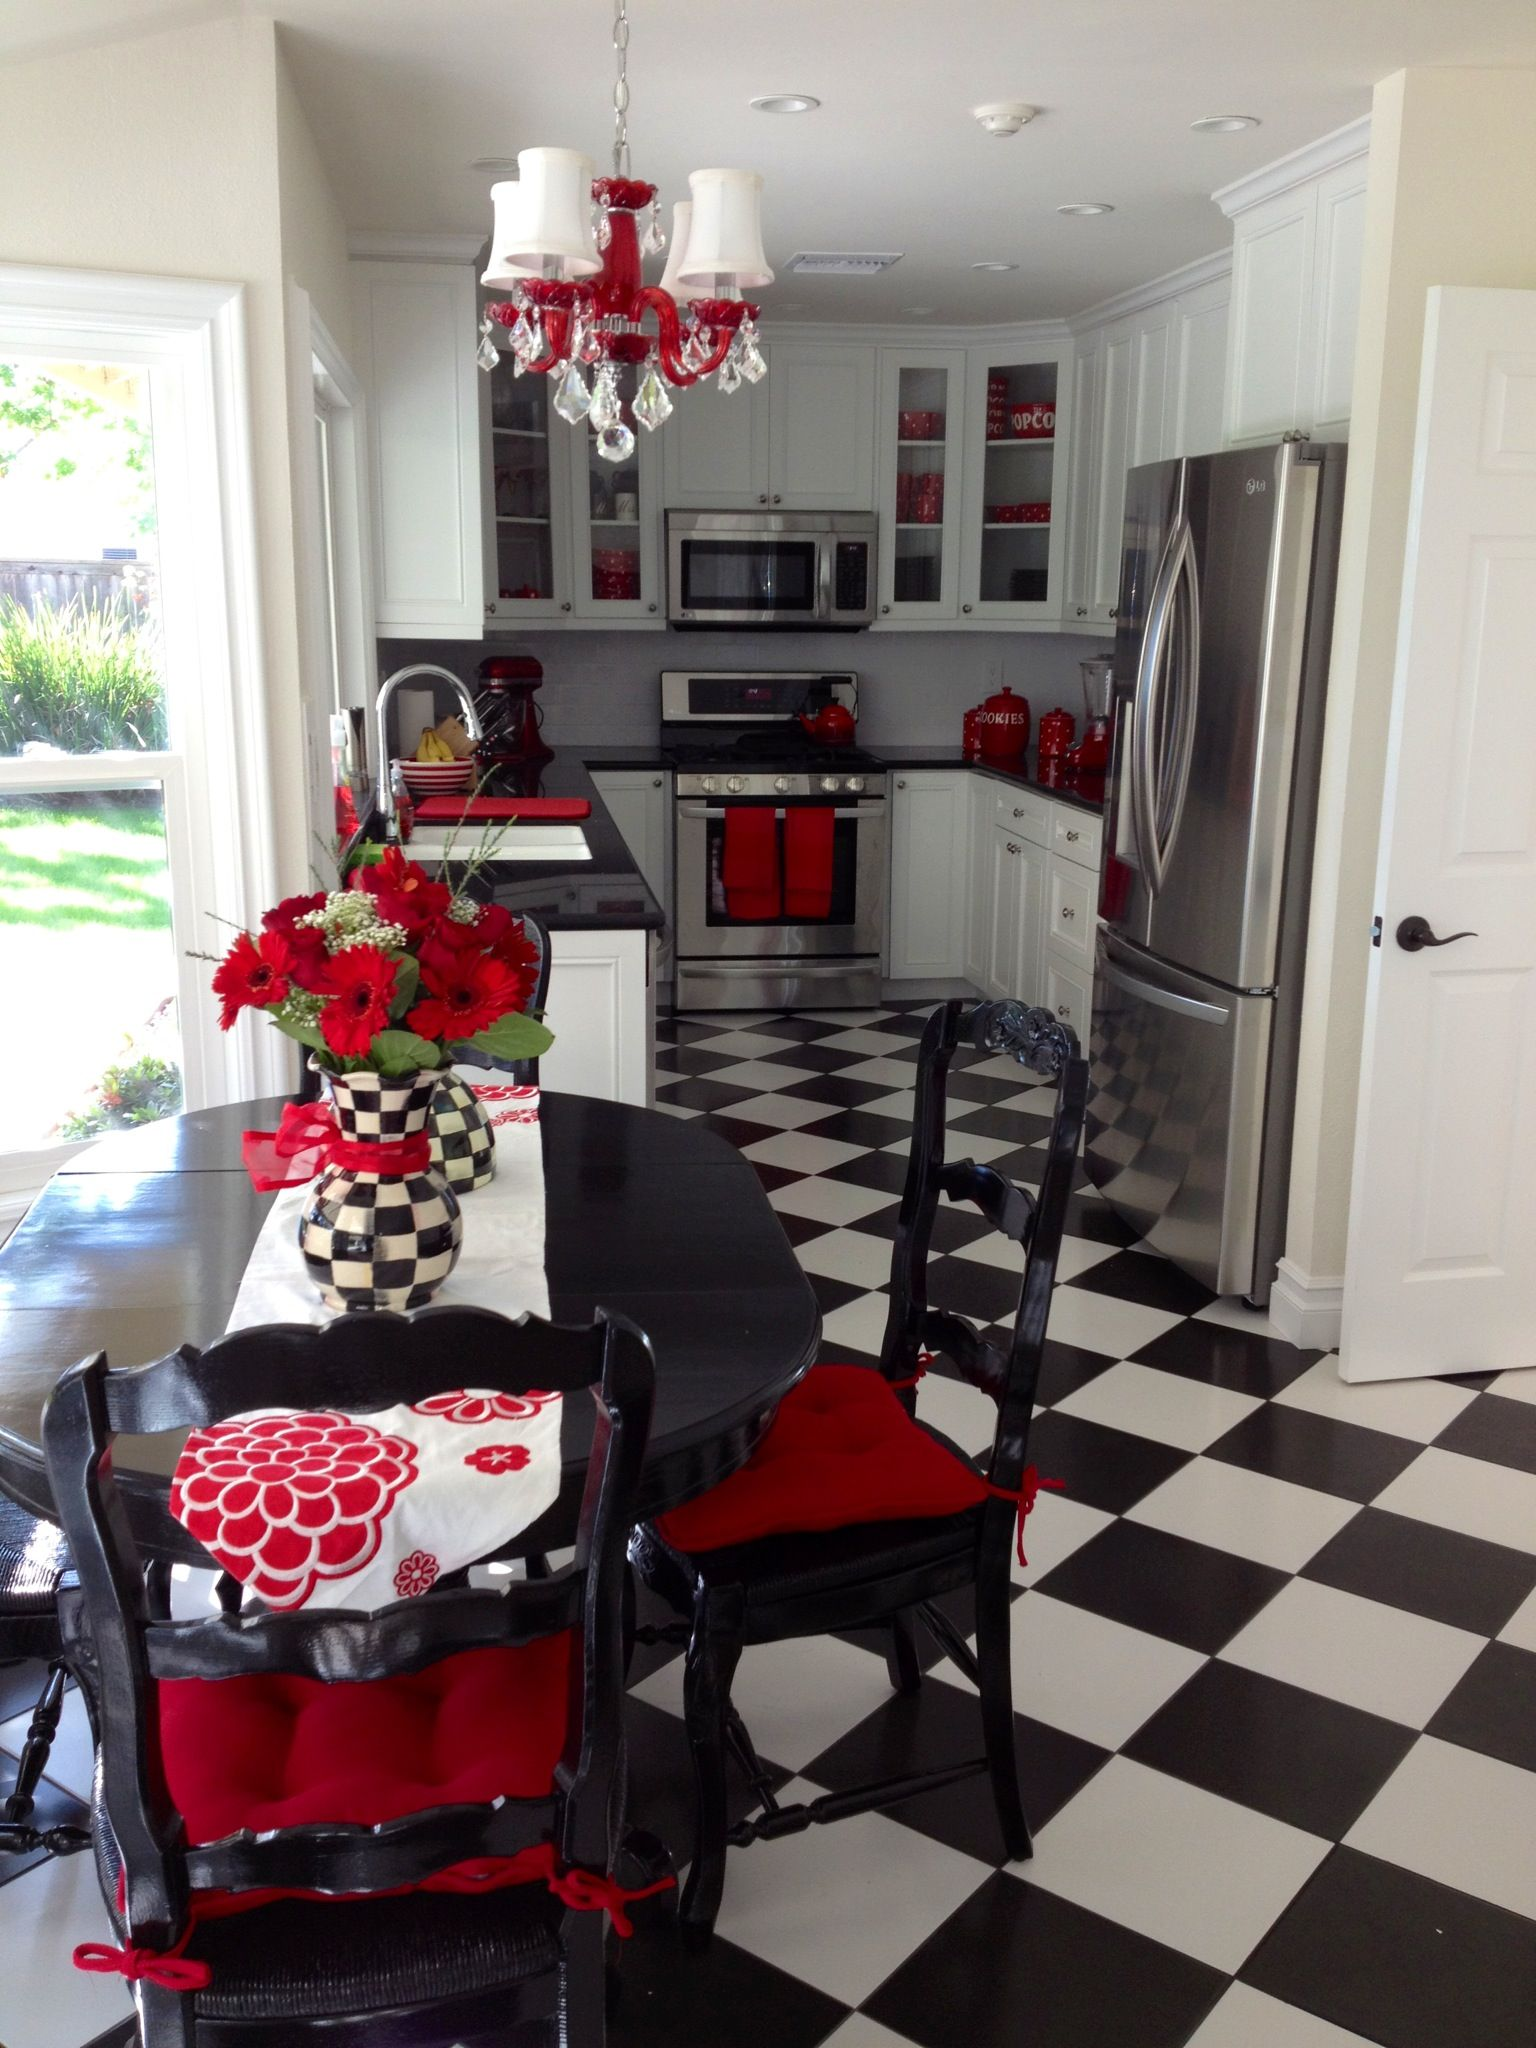 Brilliant Red And Black Kitchens Of My Fun Unique White Kitchen With Accents Acnn Decor